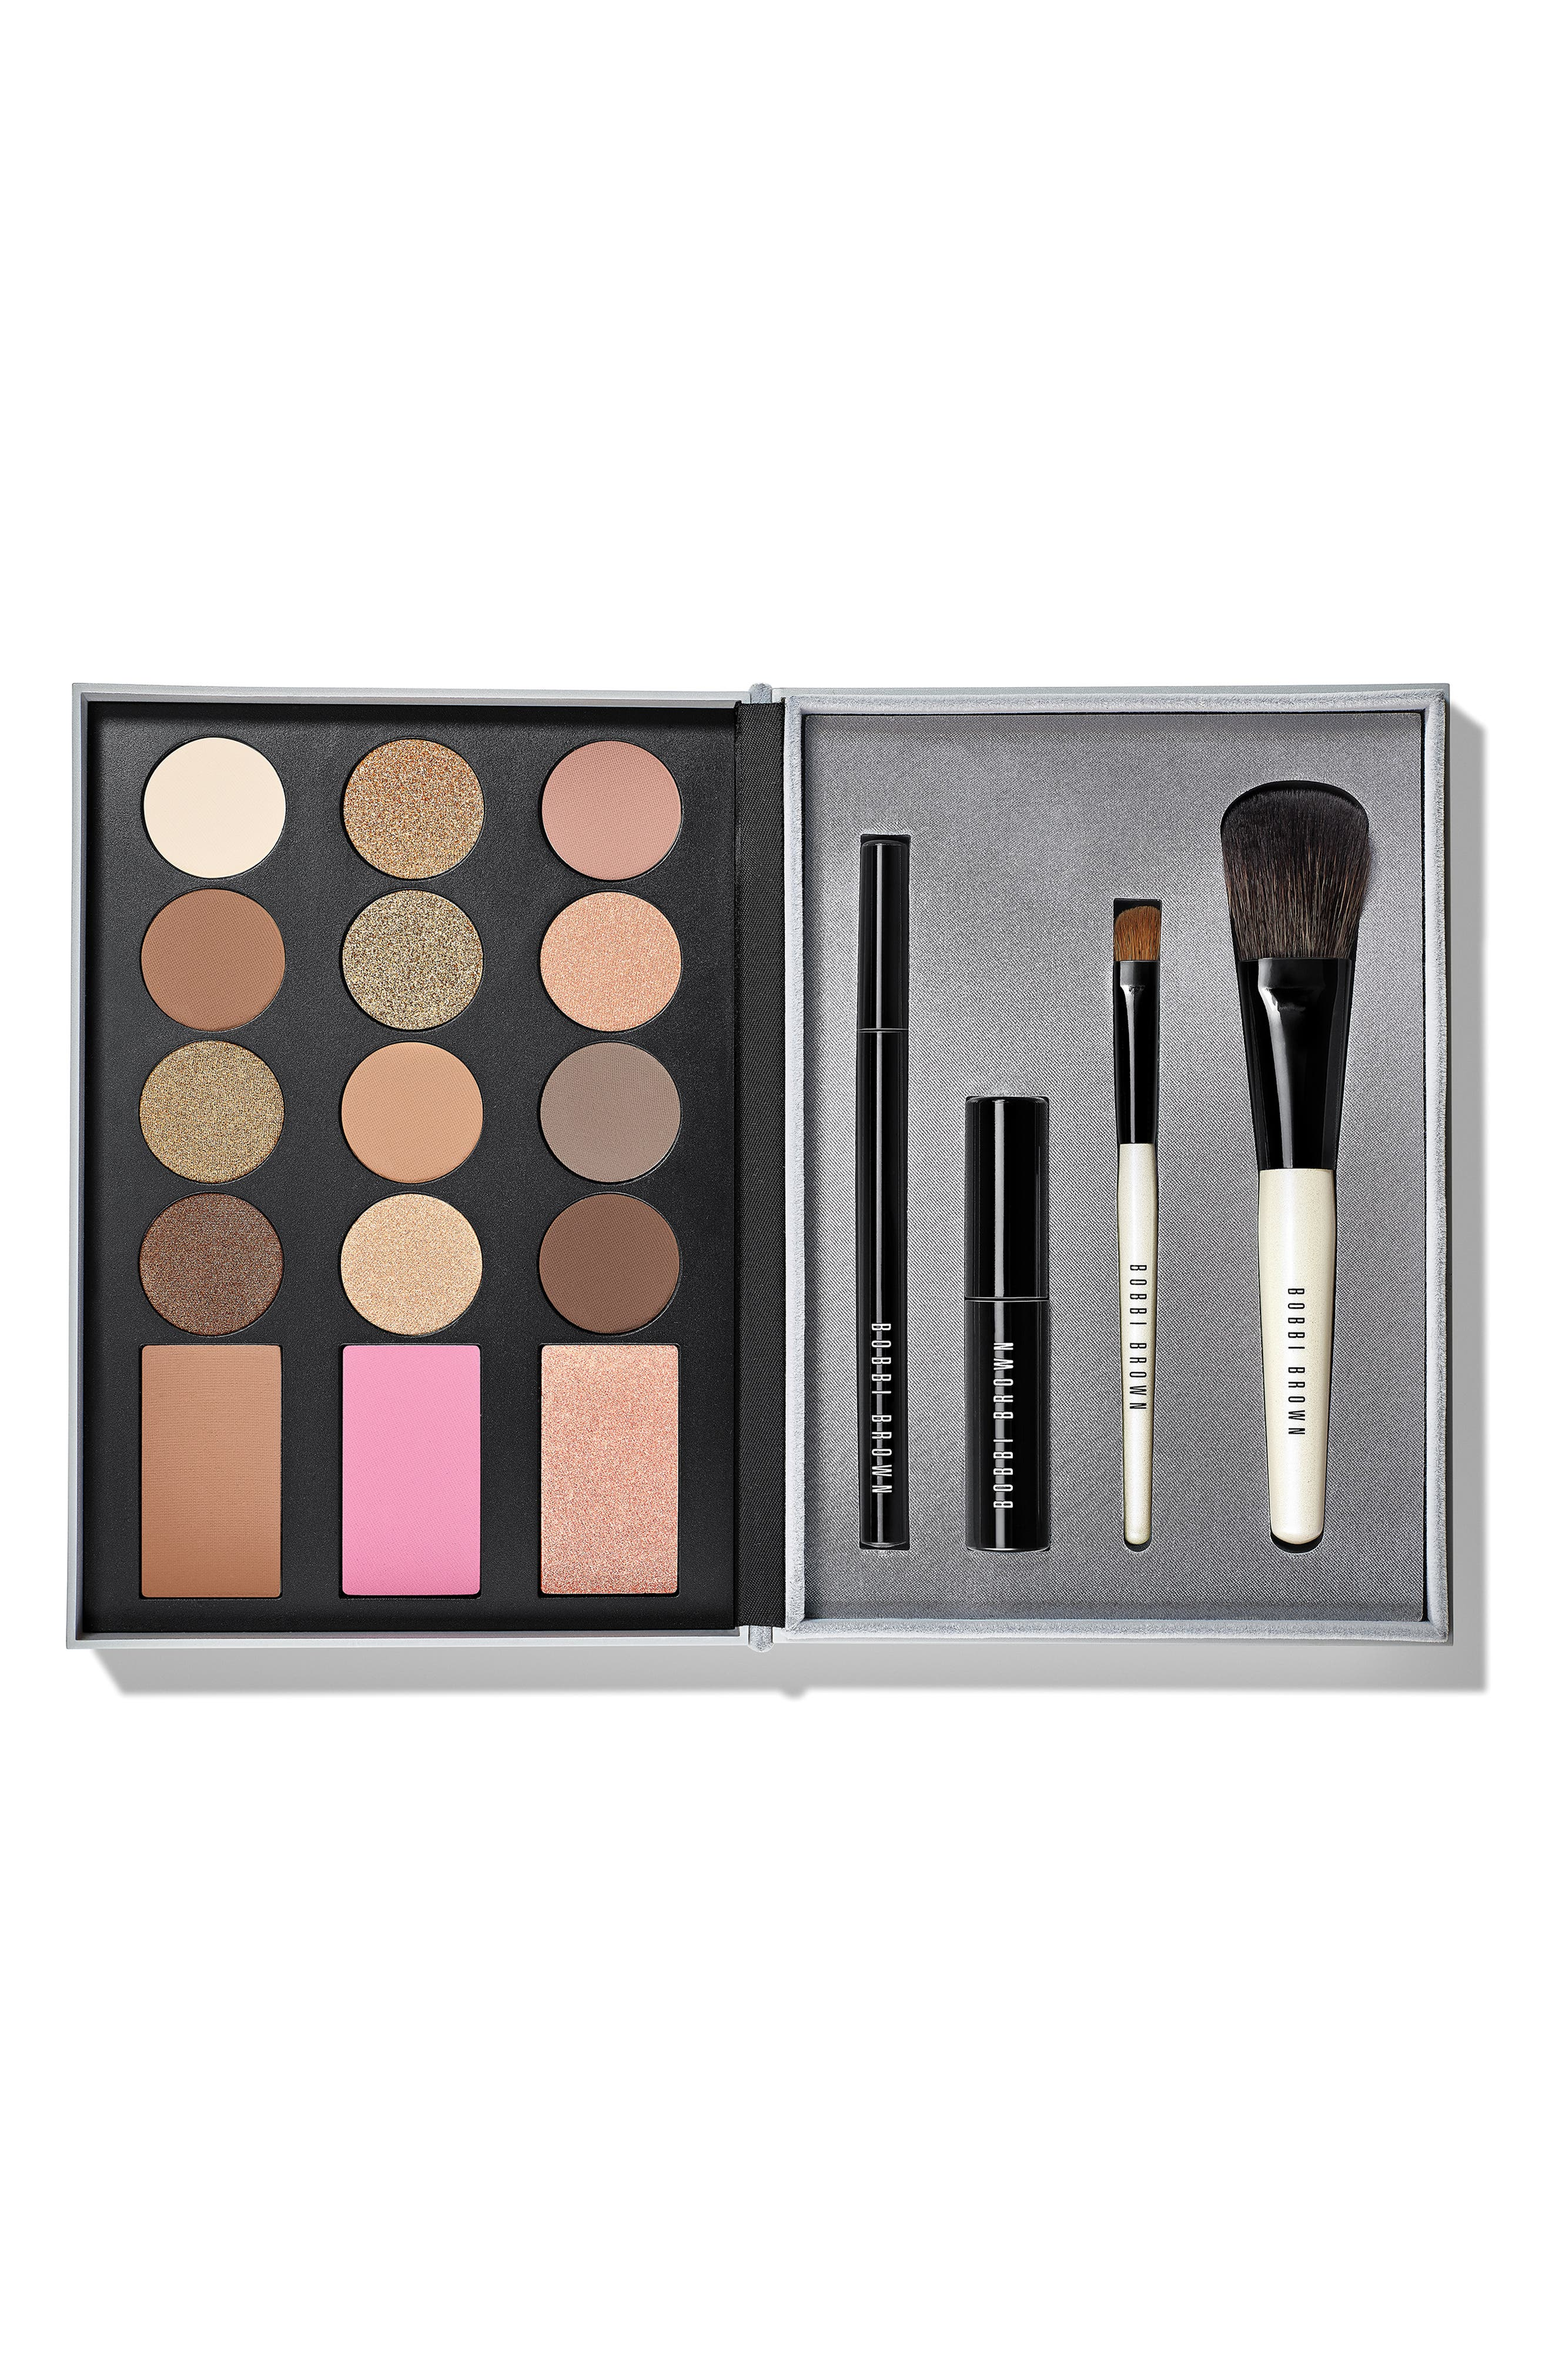 Ready, Set, Party Deluxe Eye & Cheek Palette,                             Main thumbnail 1, color,                             NO COLOR